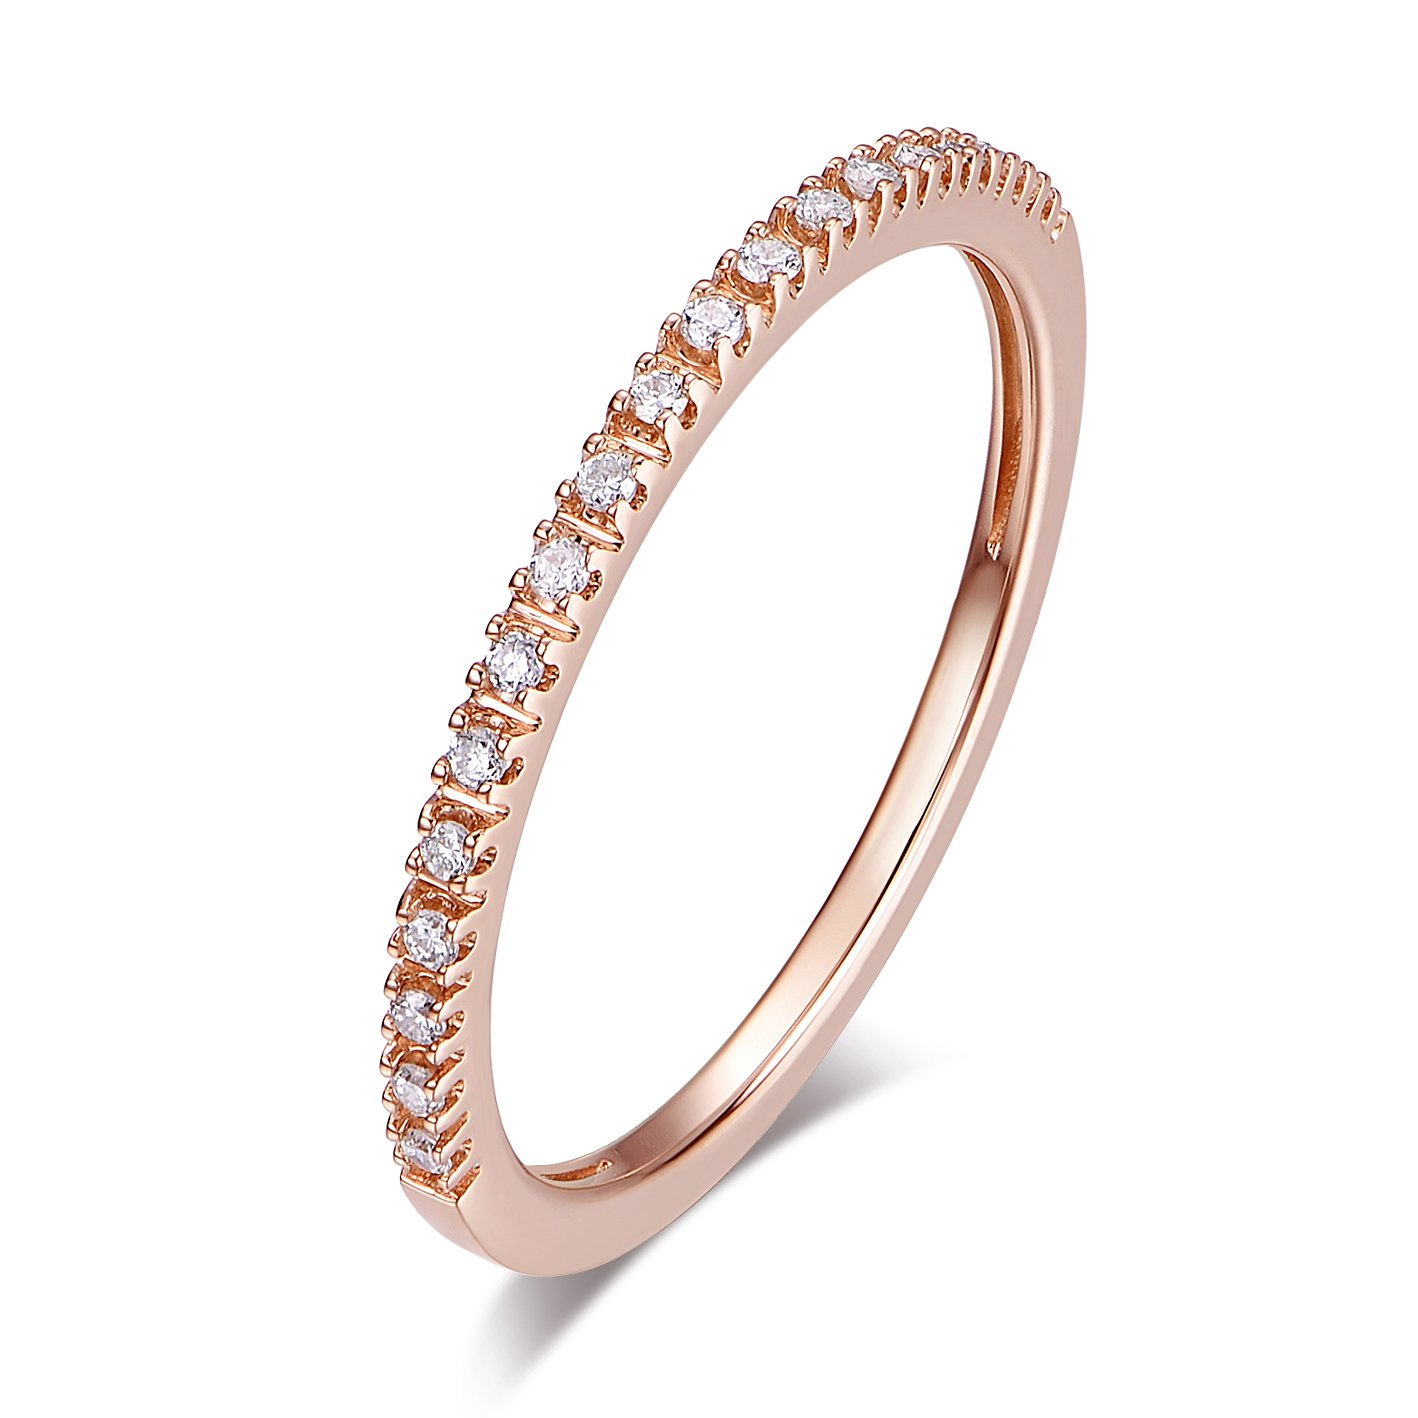 14K Gold Riviera Petite Micropave Diamond Half Eternity Wedding Band Ring for Women, 1.5mm (Rose-Gold, 6.5)